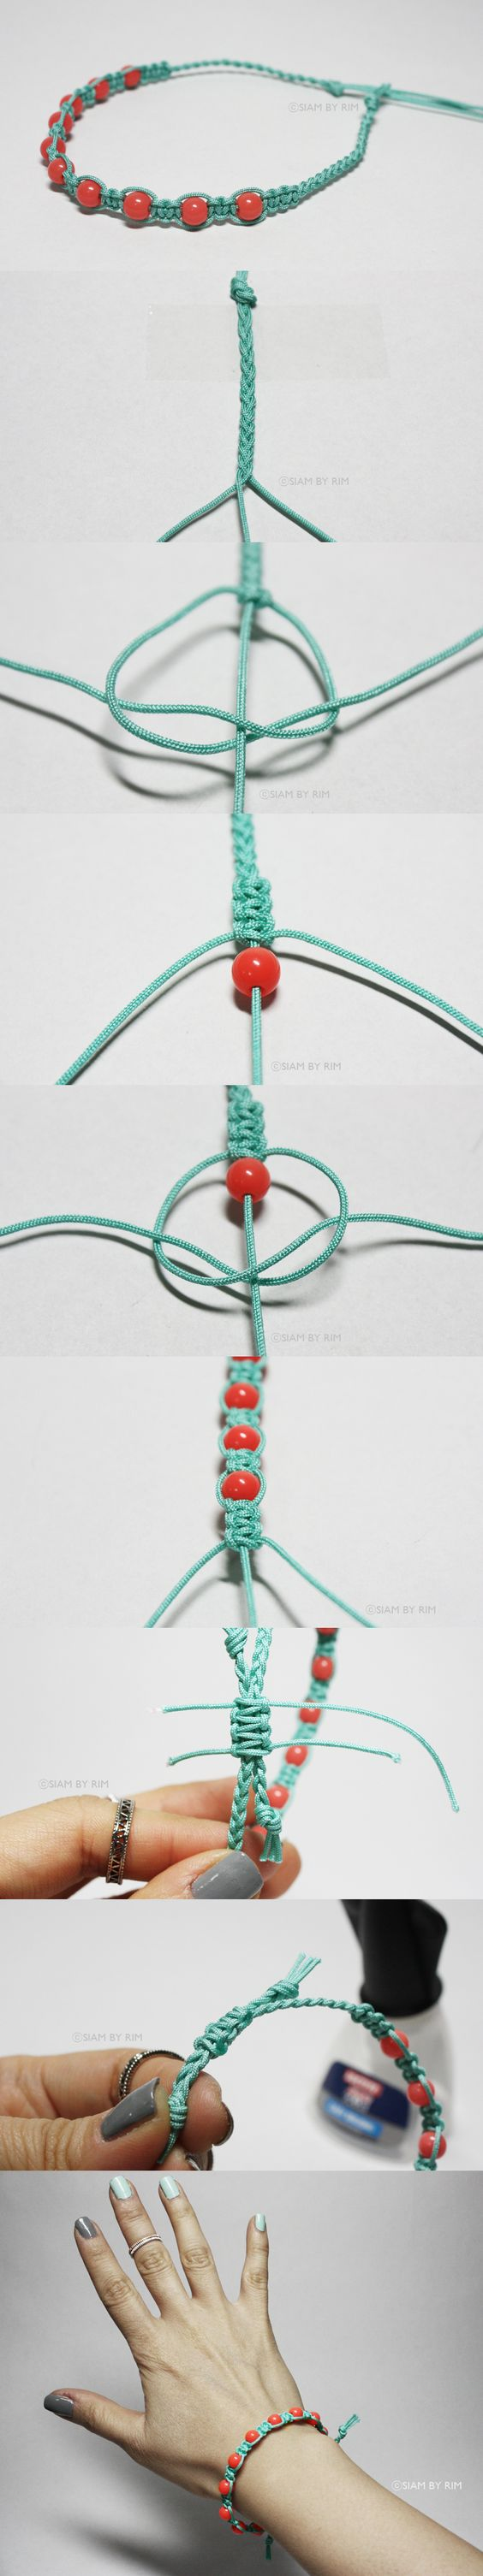 Braided and knotted bracelet/How to make a bracelet: